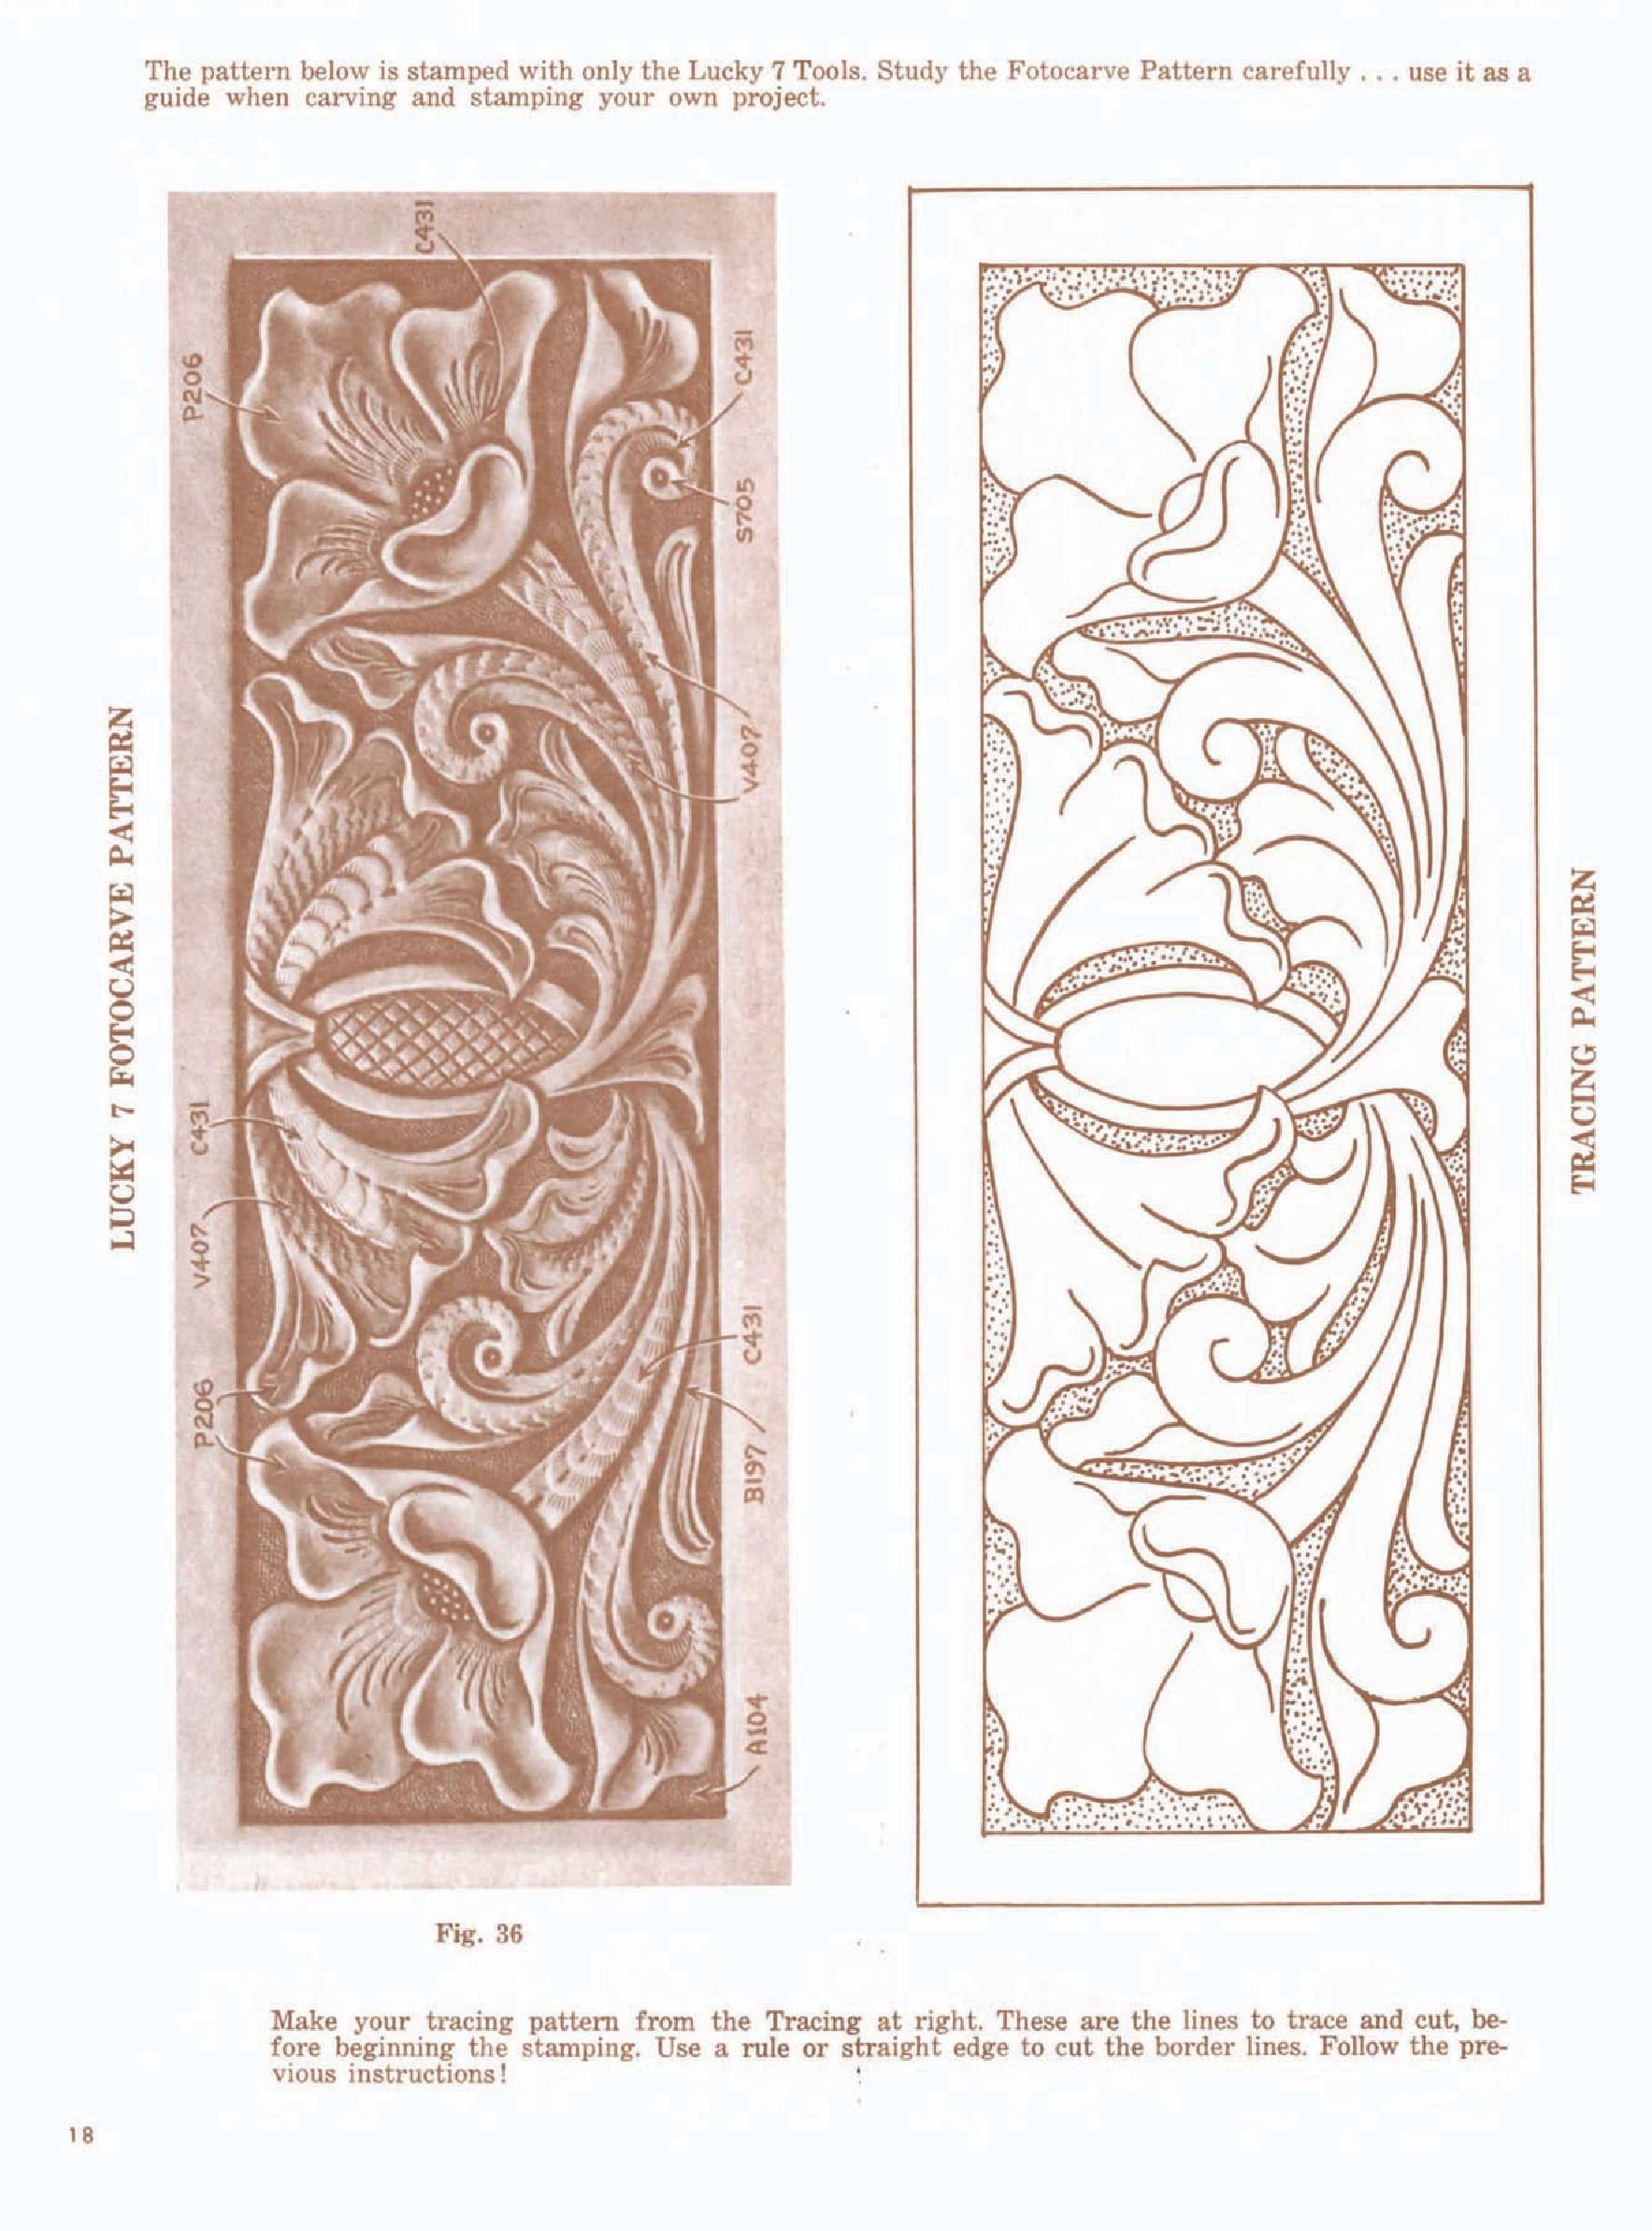 Leather carving pattern stamping pinterest